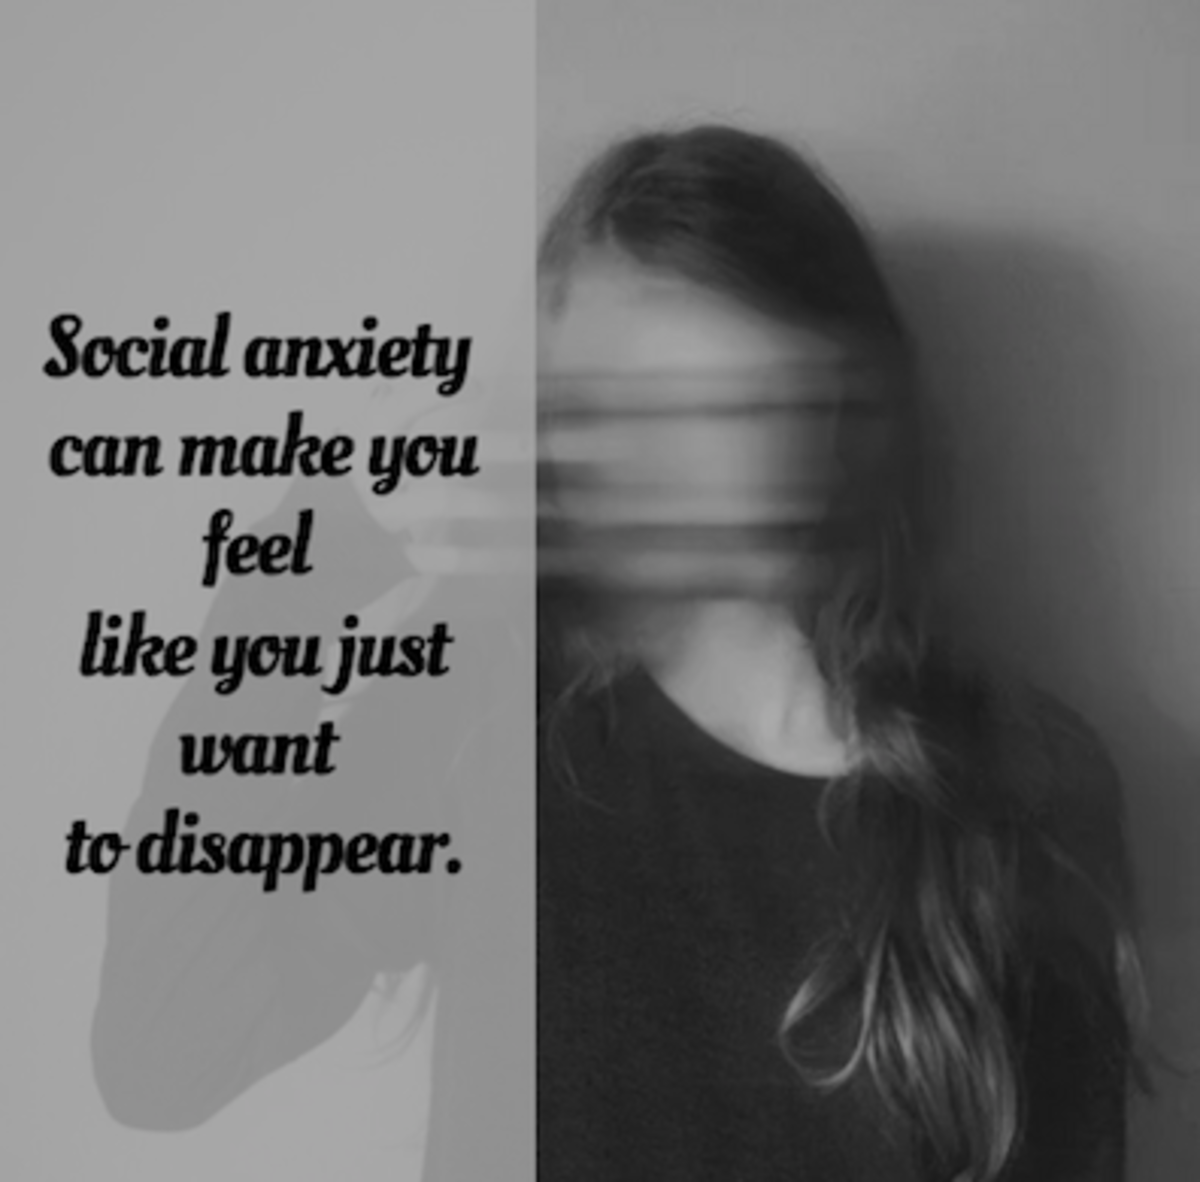 Don't let social anxiety get in your way. Remember, beneath your fear, you are still there.